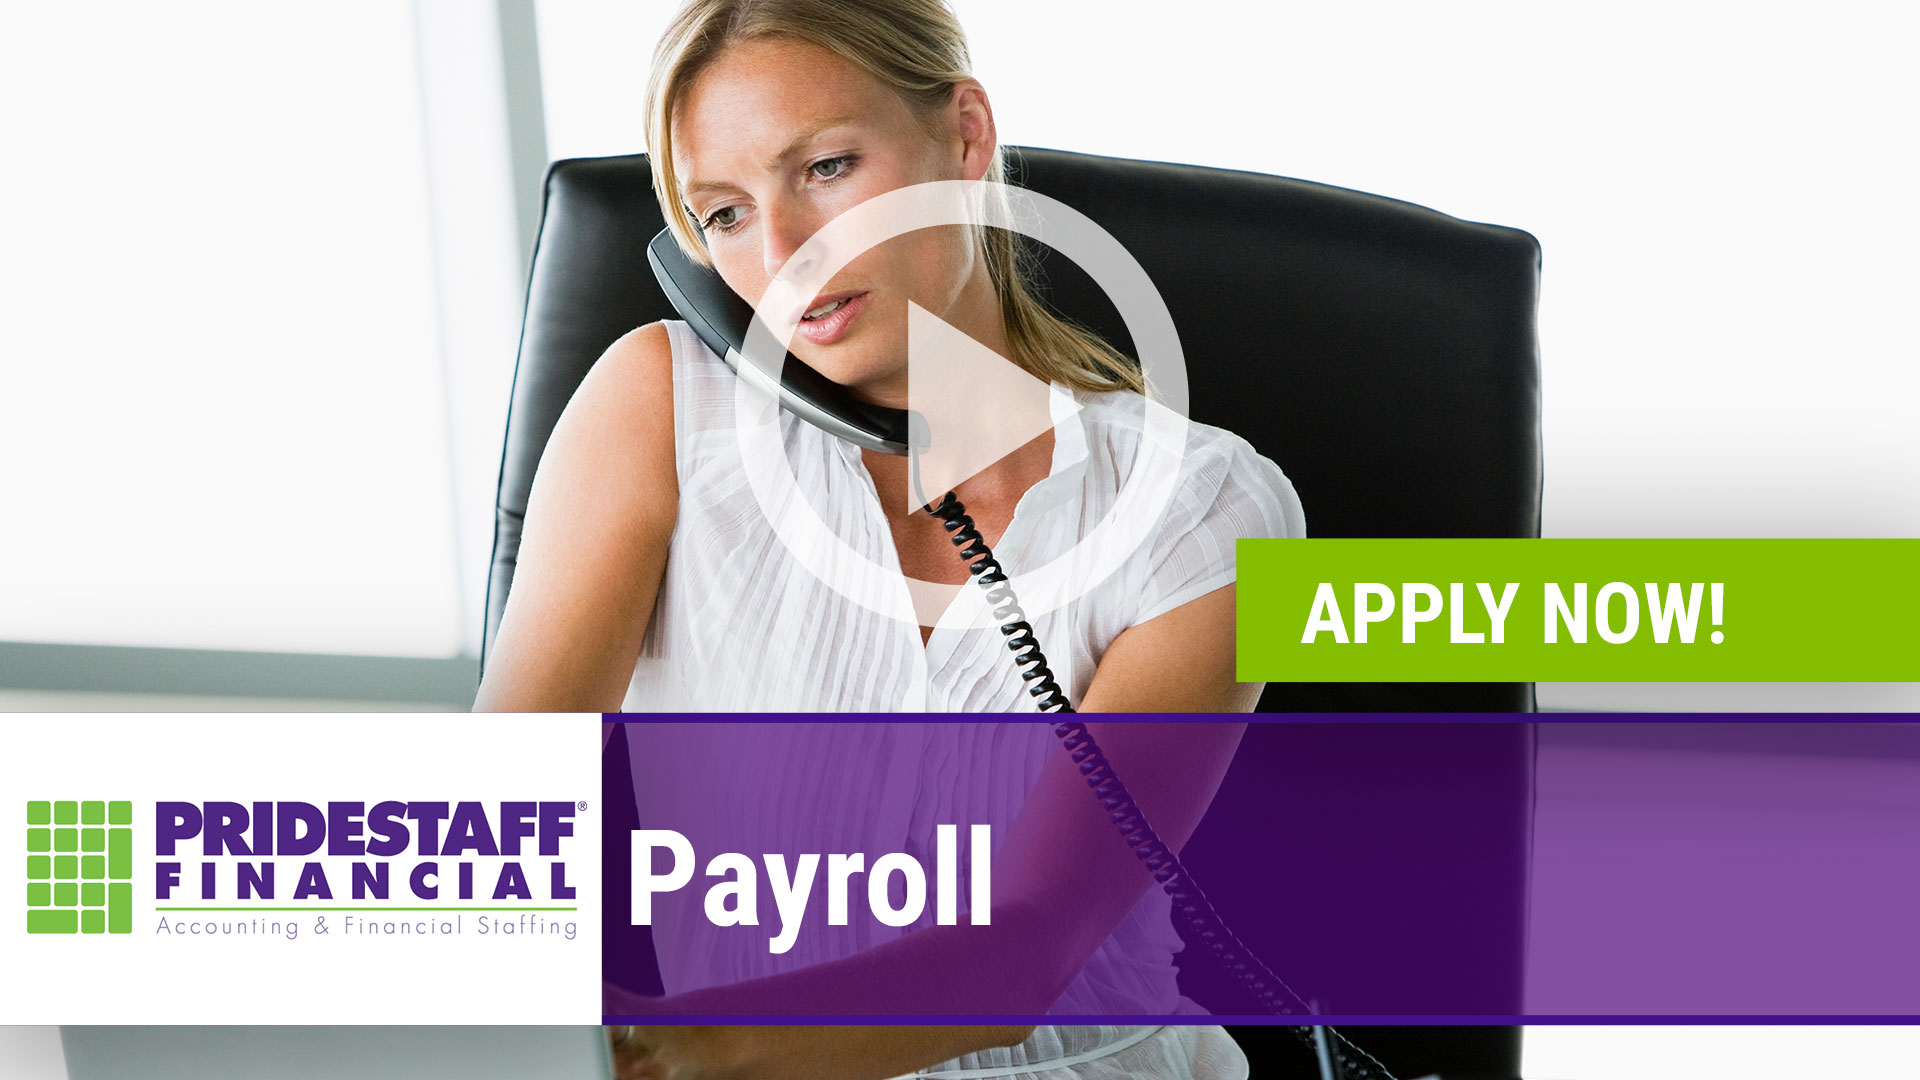 Watch our careers video for available job opening Payroll in Dallas, Texas